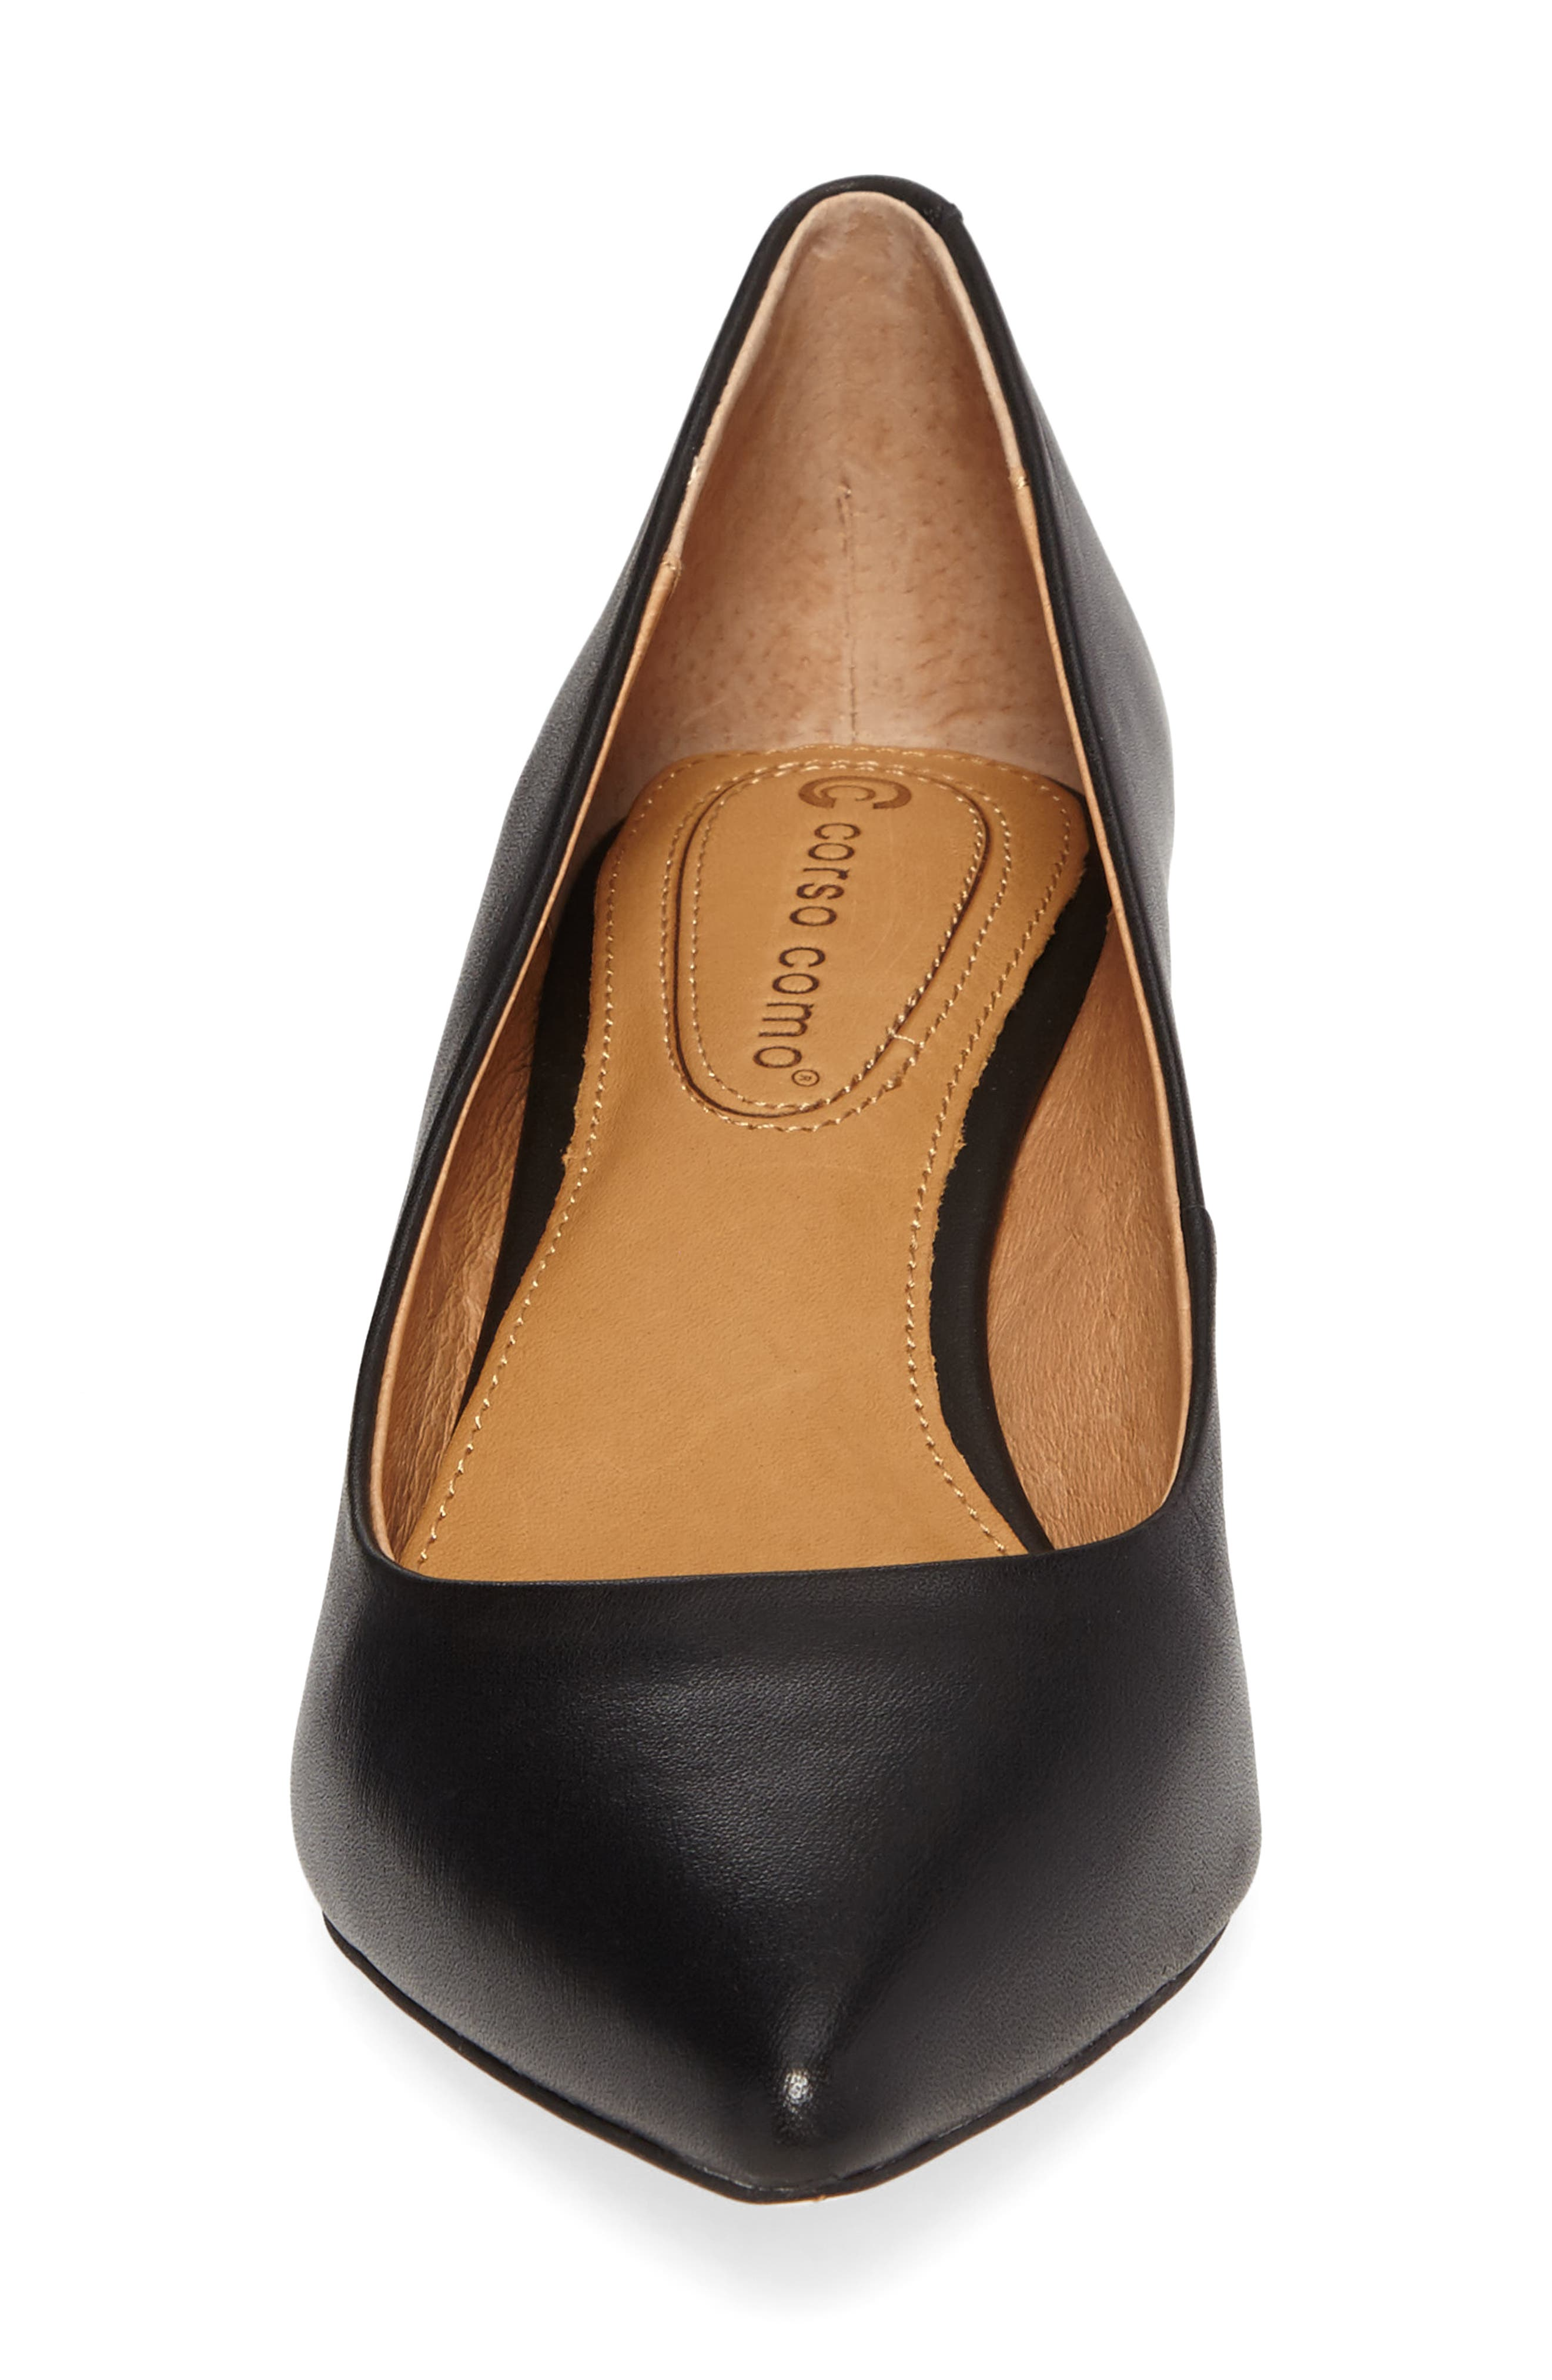 Nelly Pointy Toe Wedge Pump,                             Alternate thumbnail 4, color,                             Black Leather